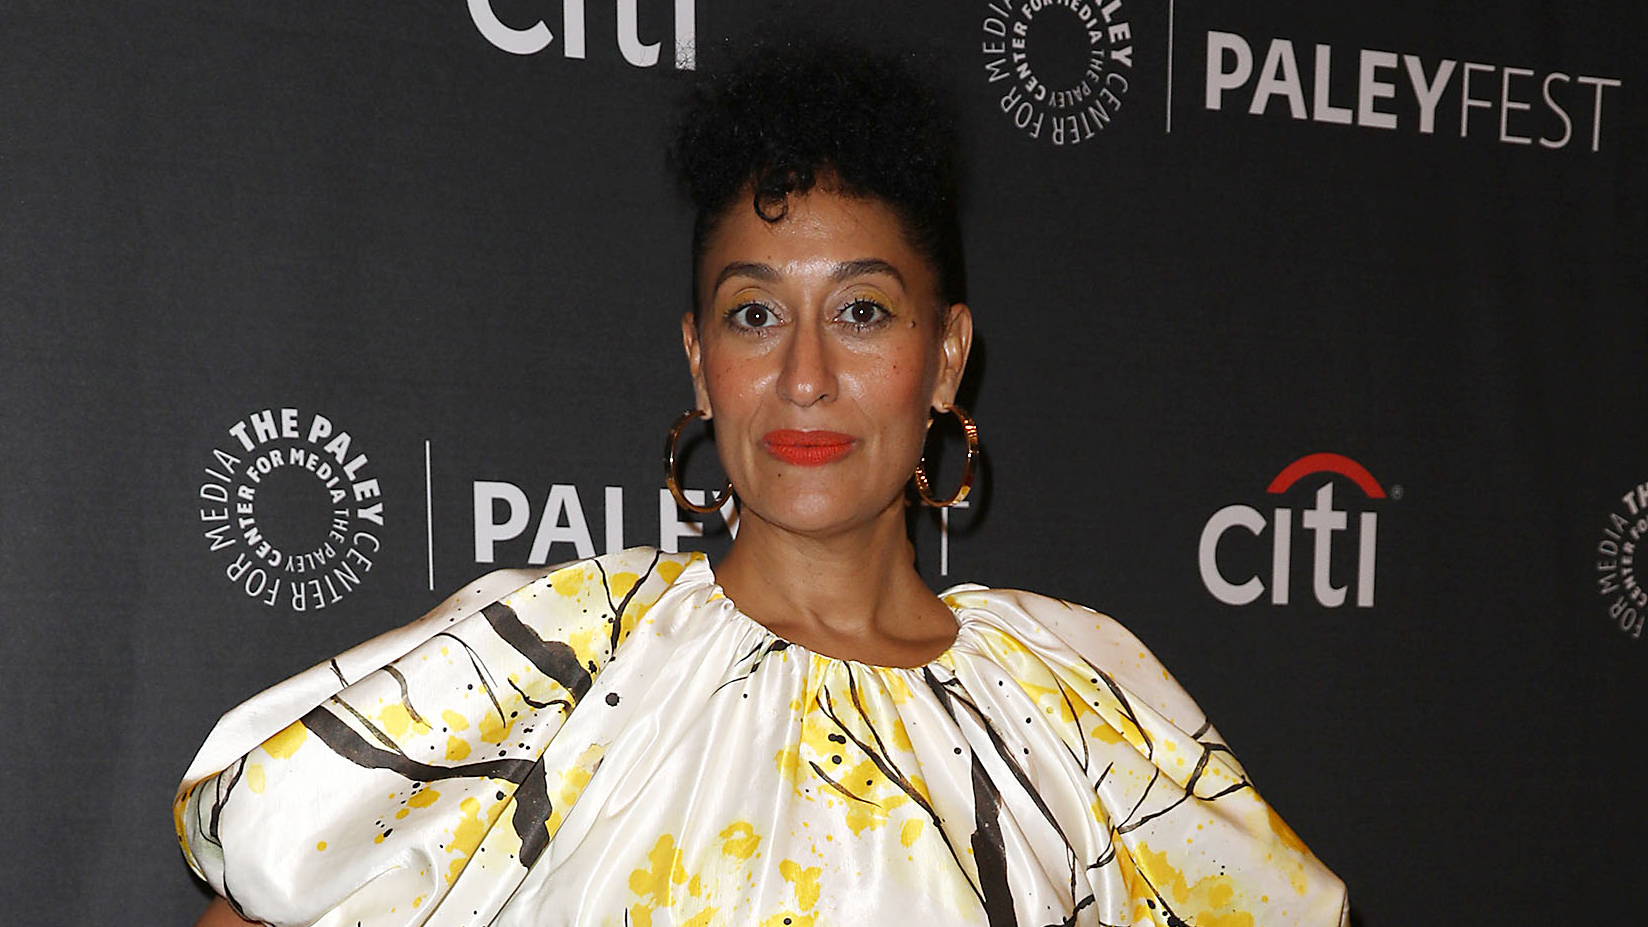 Tracee Ellis Ross on Her 'Magical' 40s and Why She Tells Others to 'Follow Your Heart'